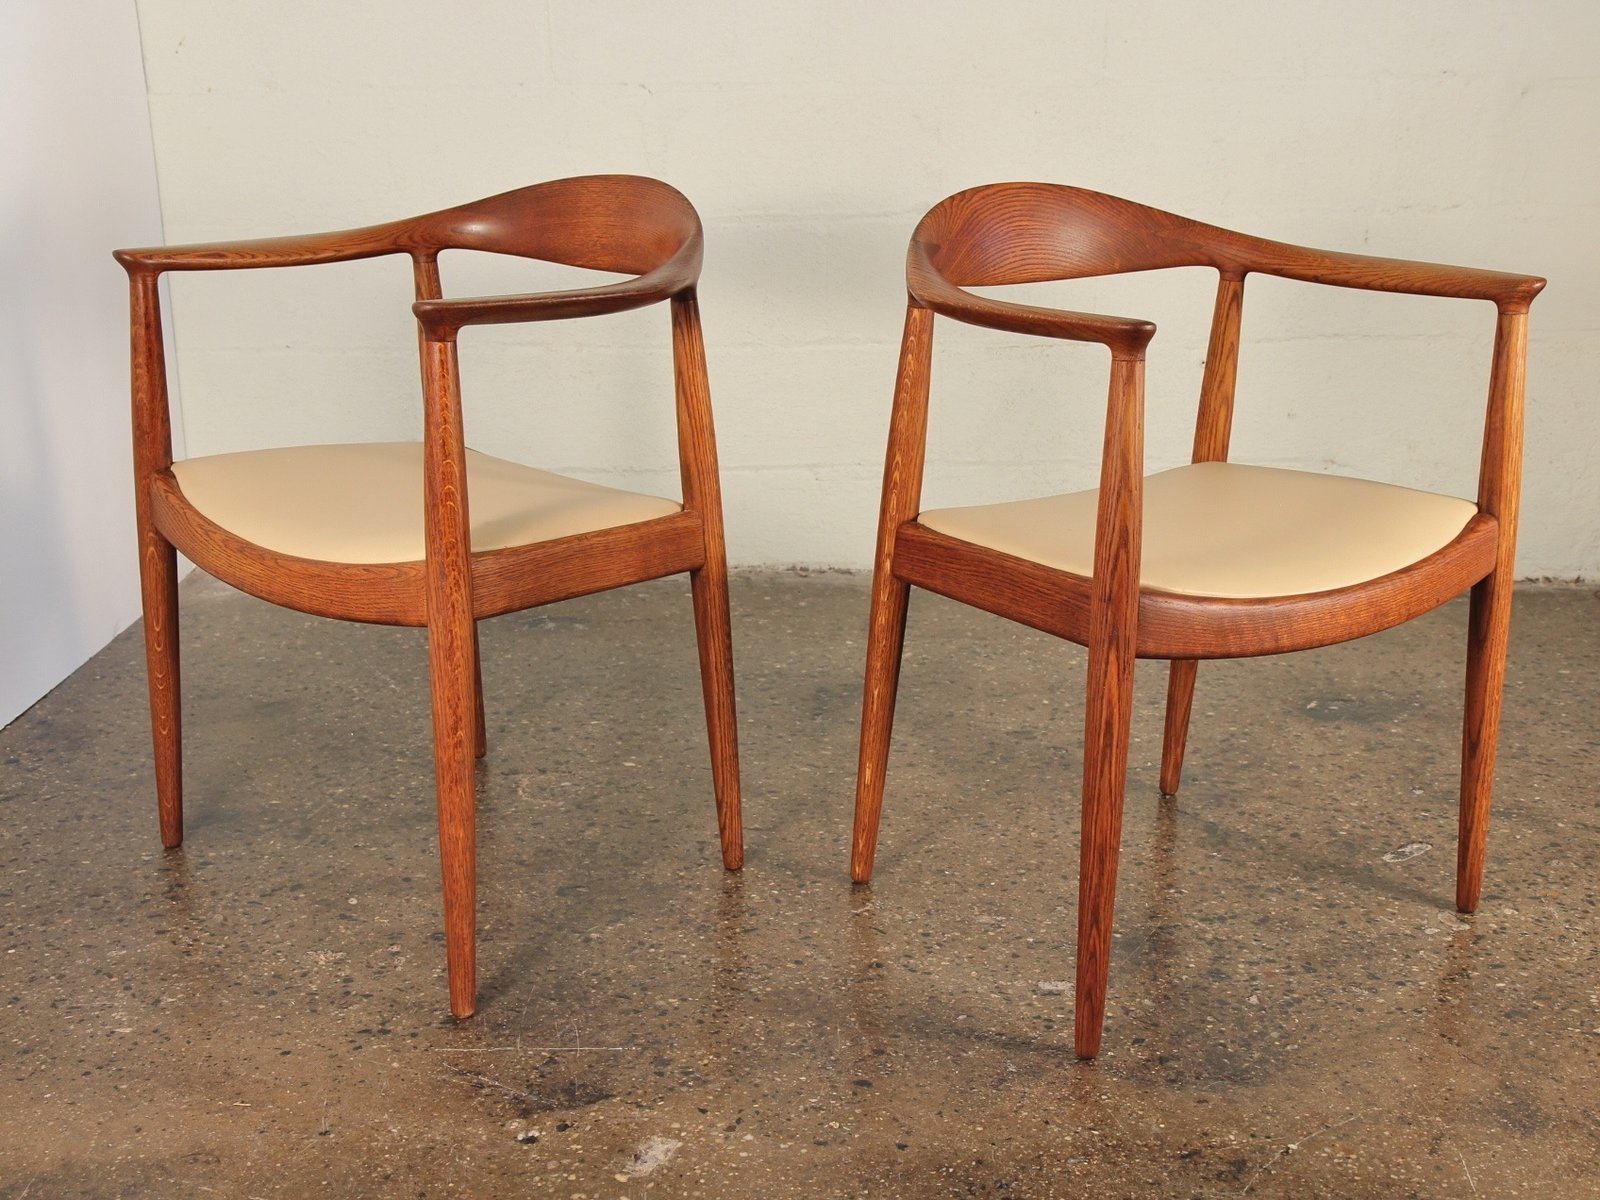 """Pair of round chairs by Hans Wegner: """"Proportionally perfect! And with a generous seat platform for comfort. You don't just sit in this chair, you have a sensuous seating experience."""" $6,800 for a pair at Open Air Modern  Photo 7 of 11 in Must-Have Collectors Items at Brooklyn's Open Air Modern"""